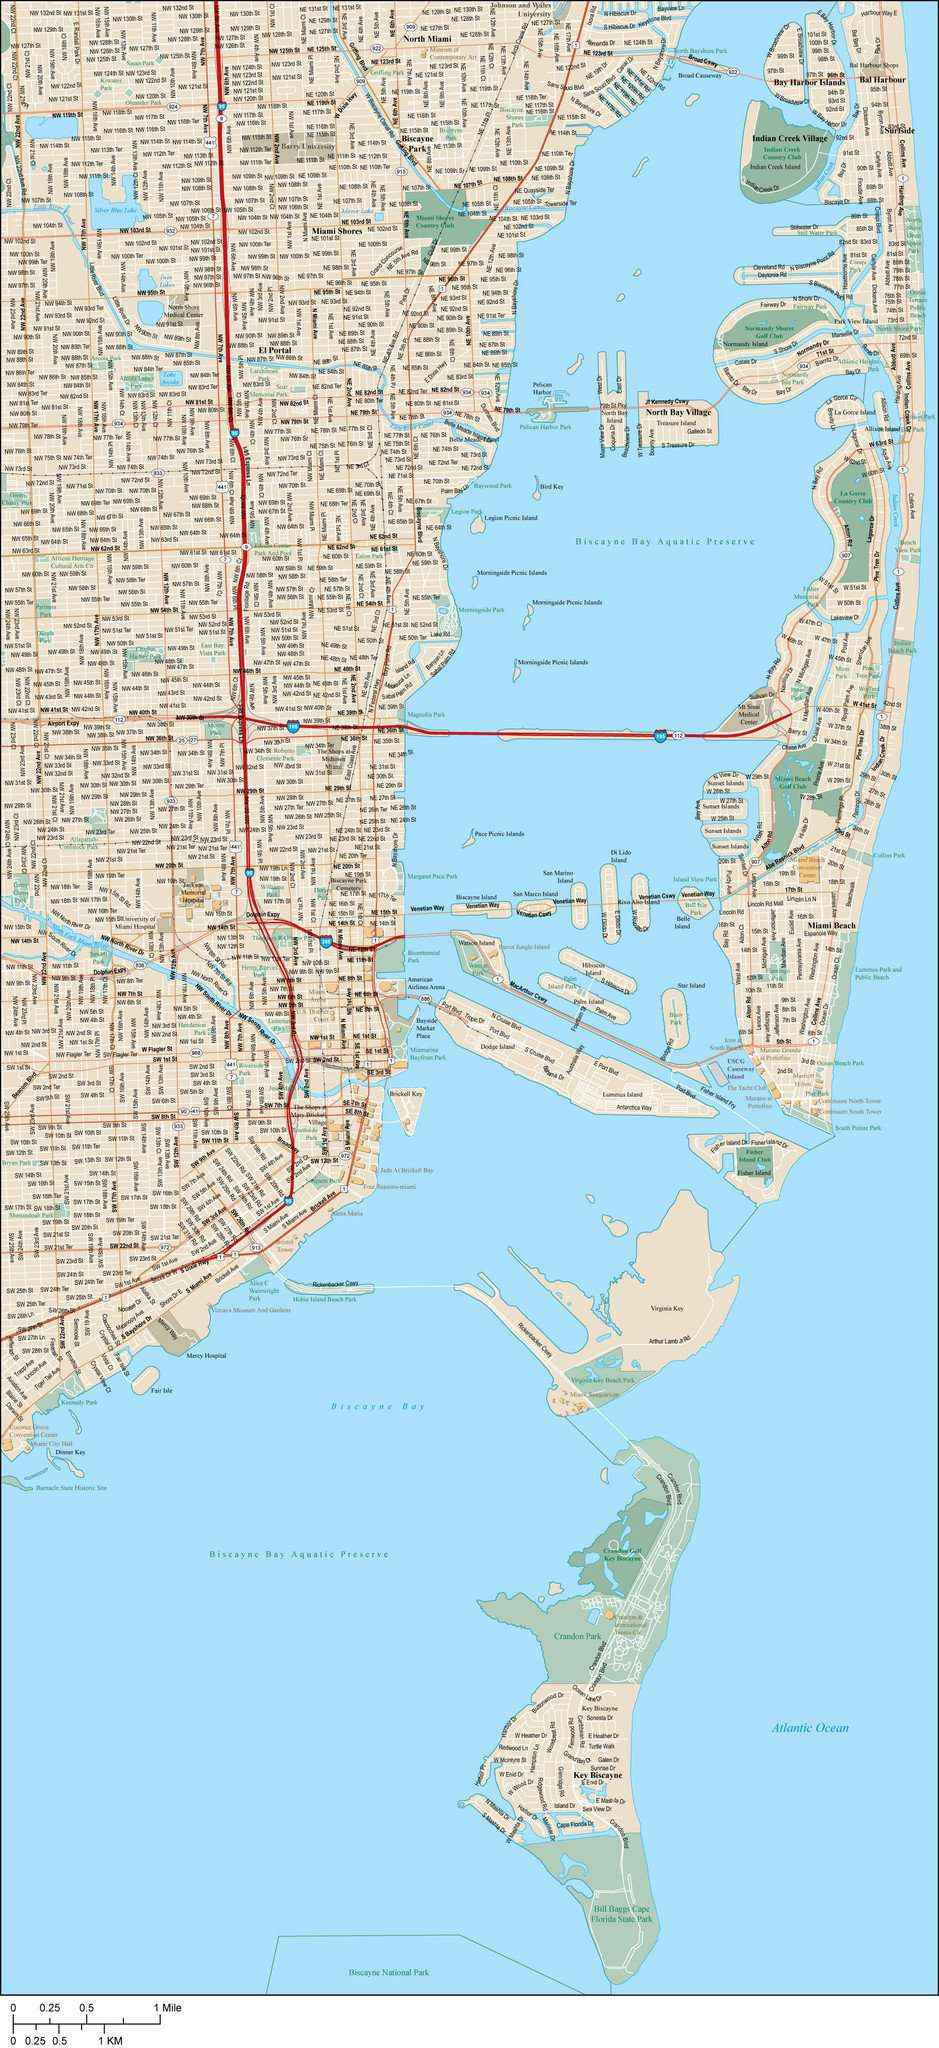 Miami Map With Local Streets In Adobe Illustrator Vector Format